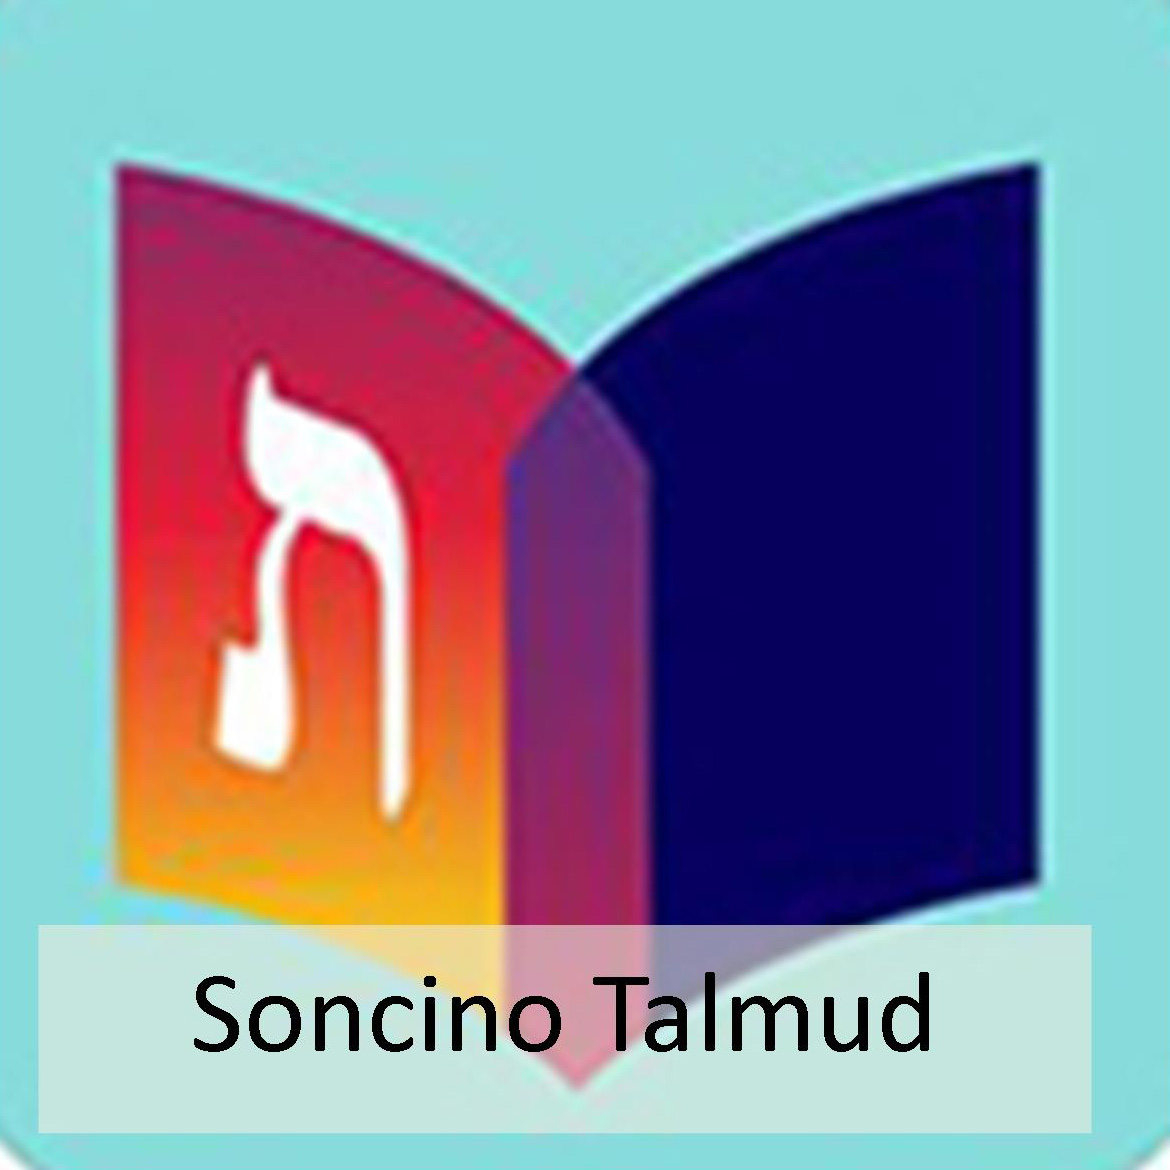 soncinotalmud